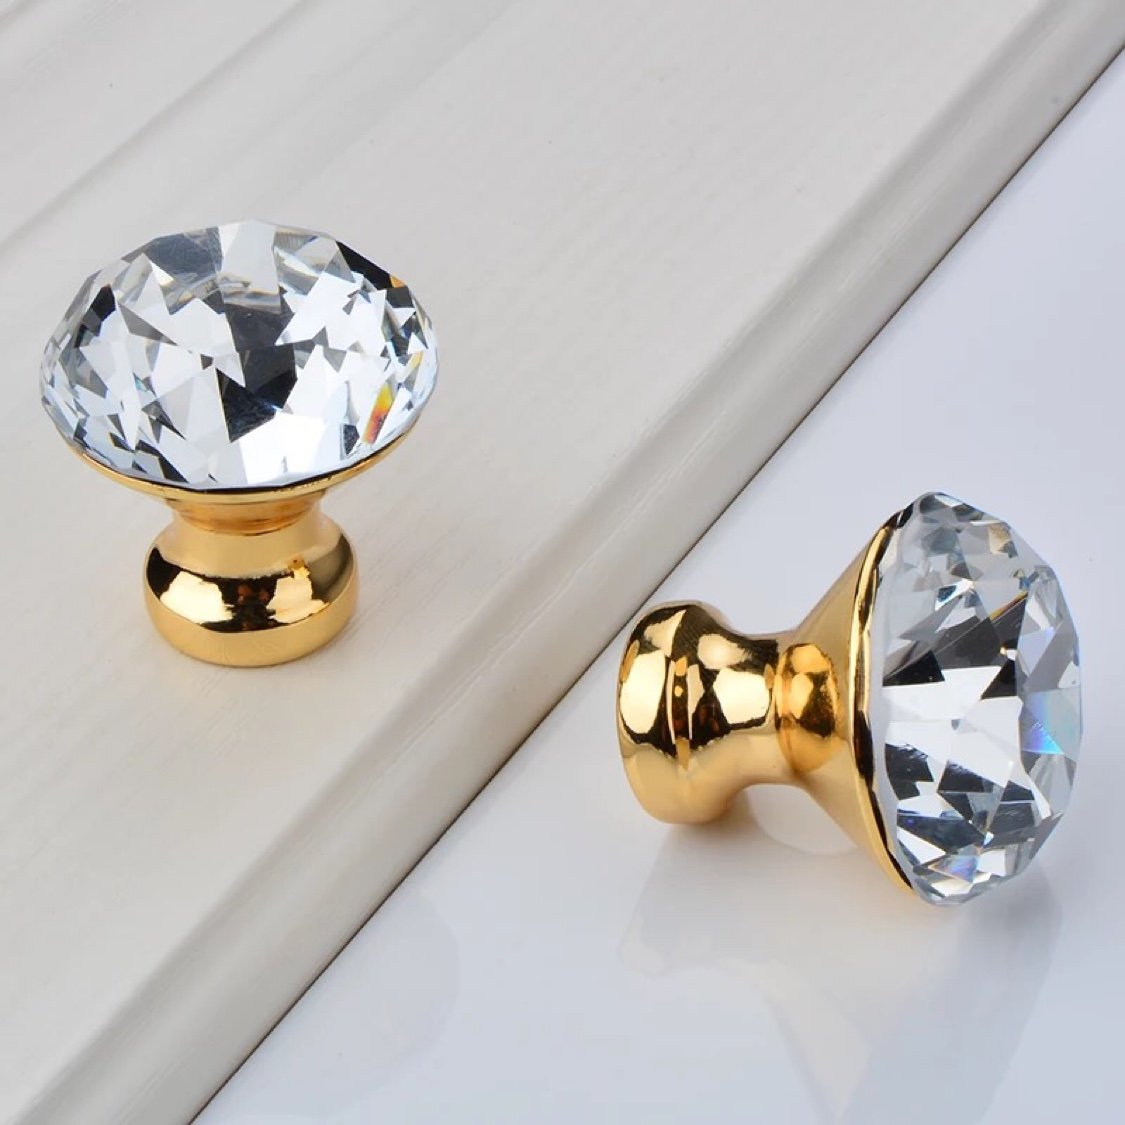 Crystal Glass Cabinet Knobs - LONGWIN 10pcs 30mm crystal Dresser Cupboard Drawer handles (Gold) by LONGWIN (Image #5)